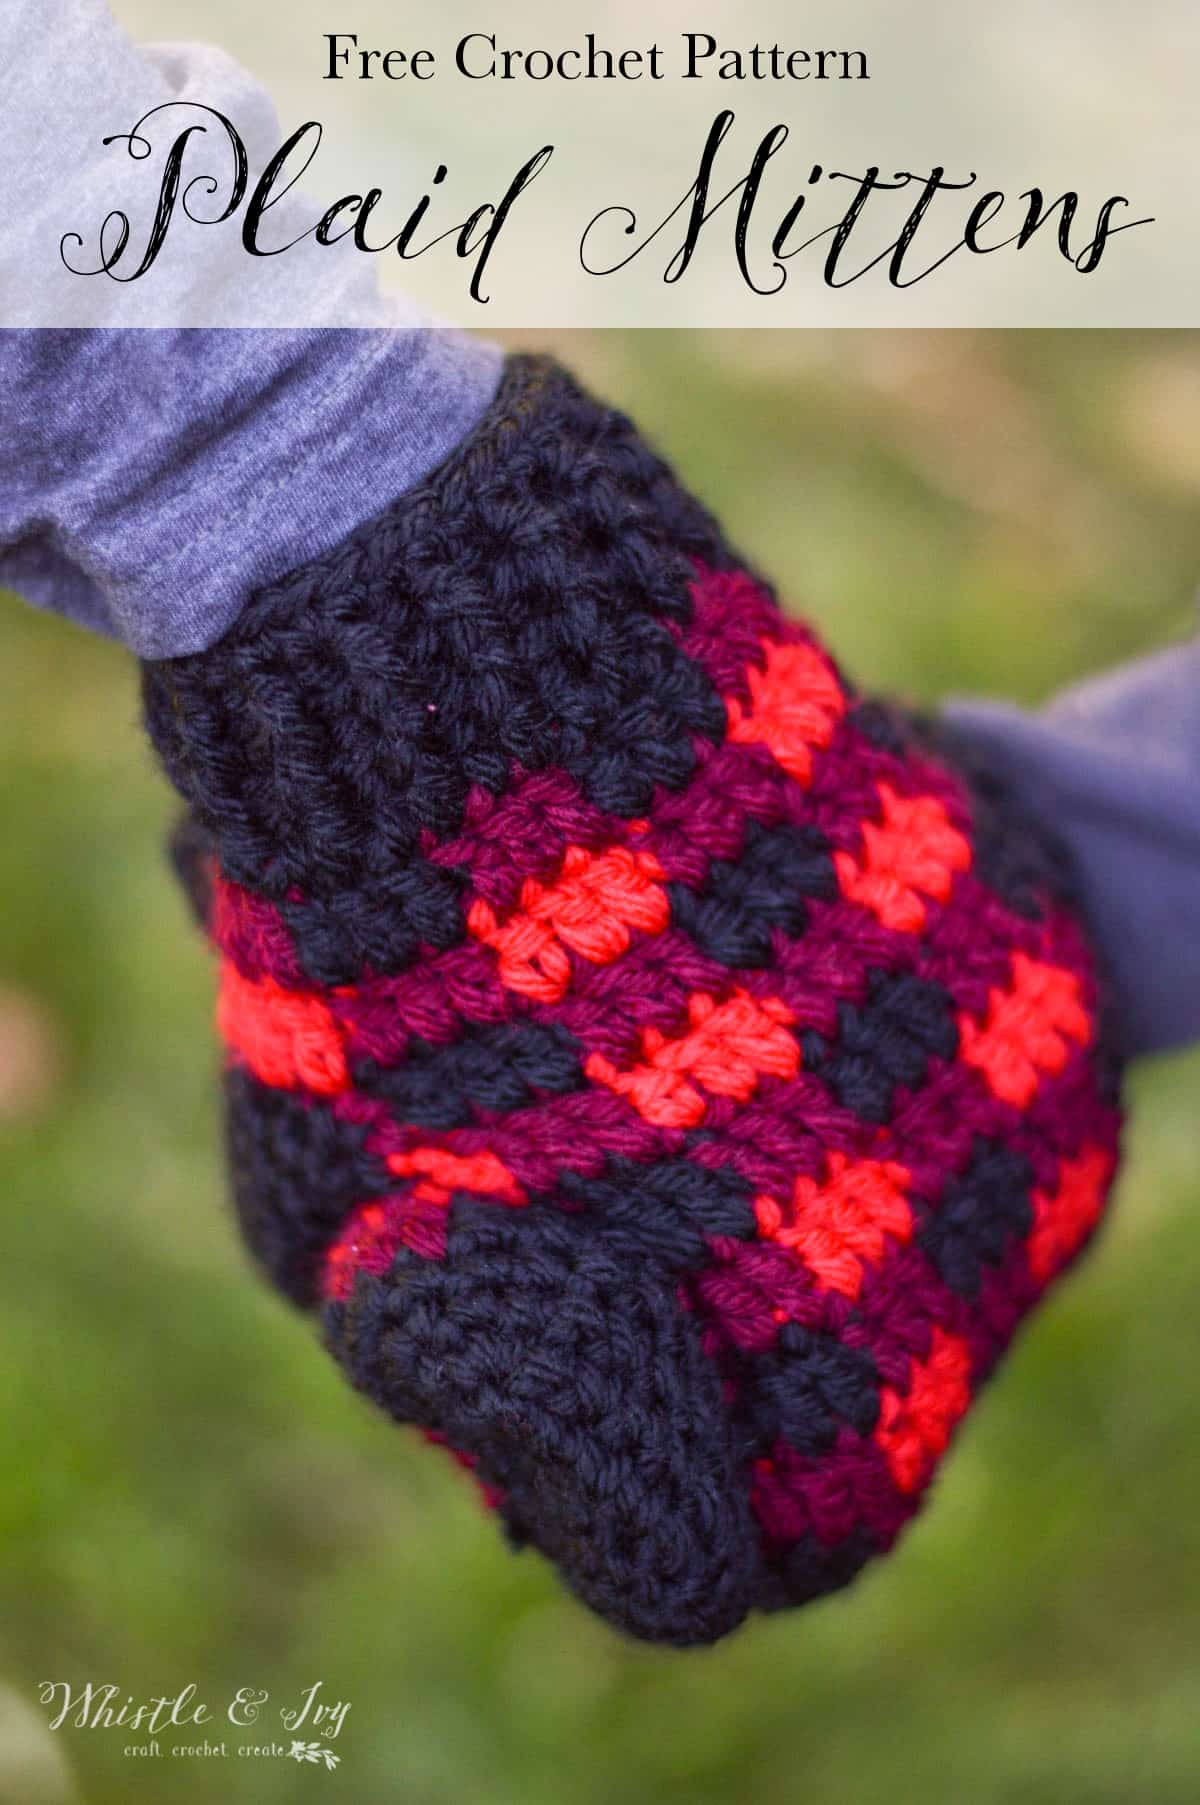 Crochet Plaid Mittens - Free Crochet Pattern - Whistle and Ivy